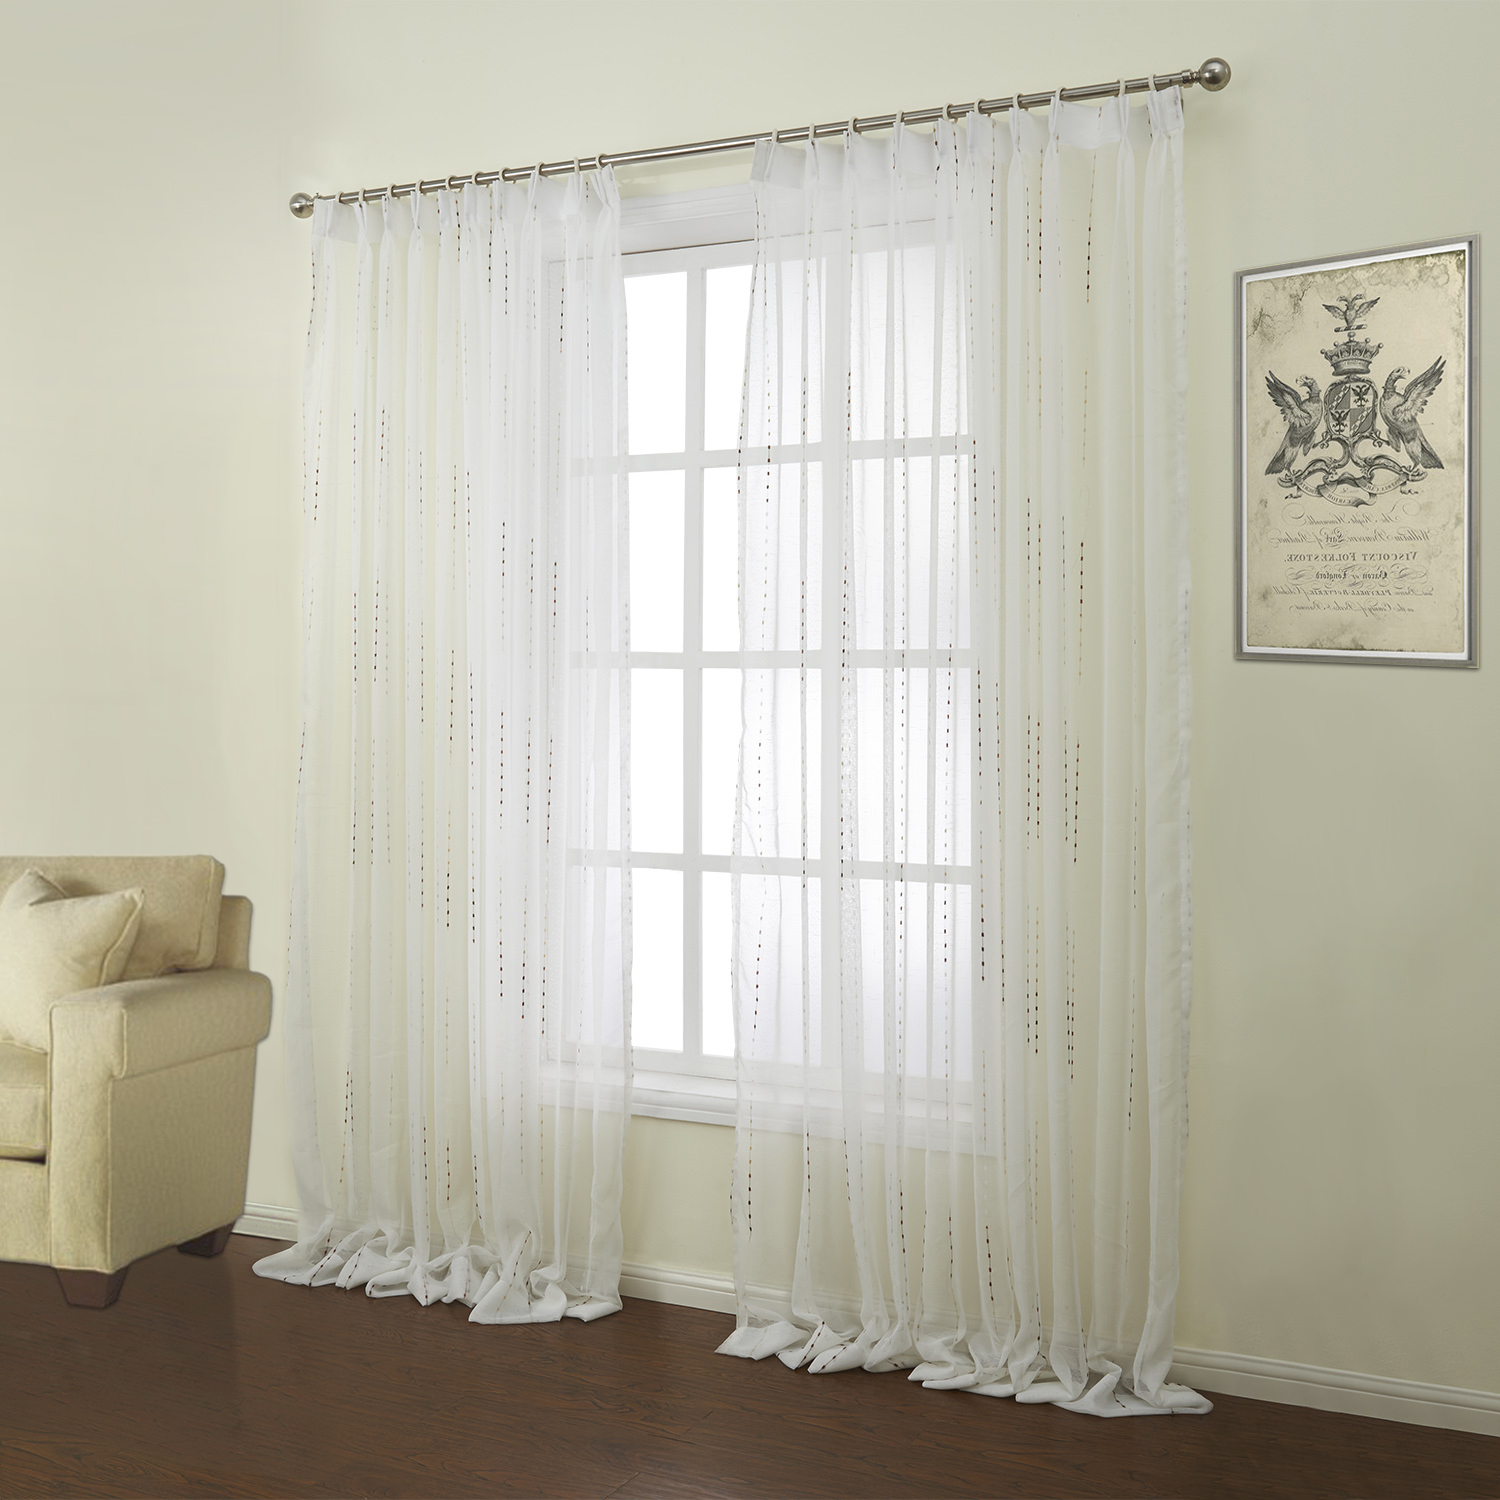 Curtains sheer curtains one panel modern jacquard white